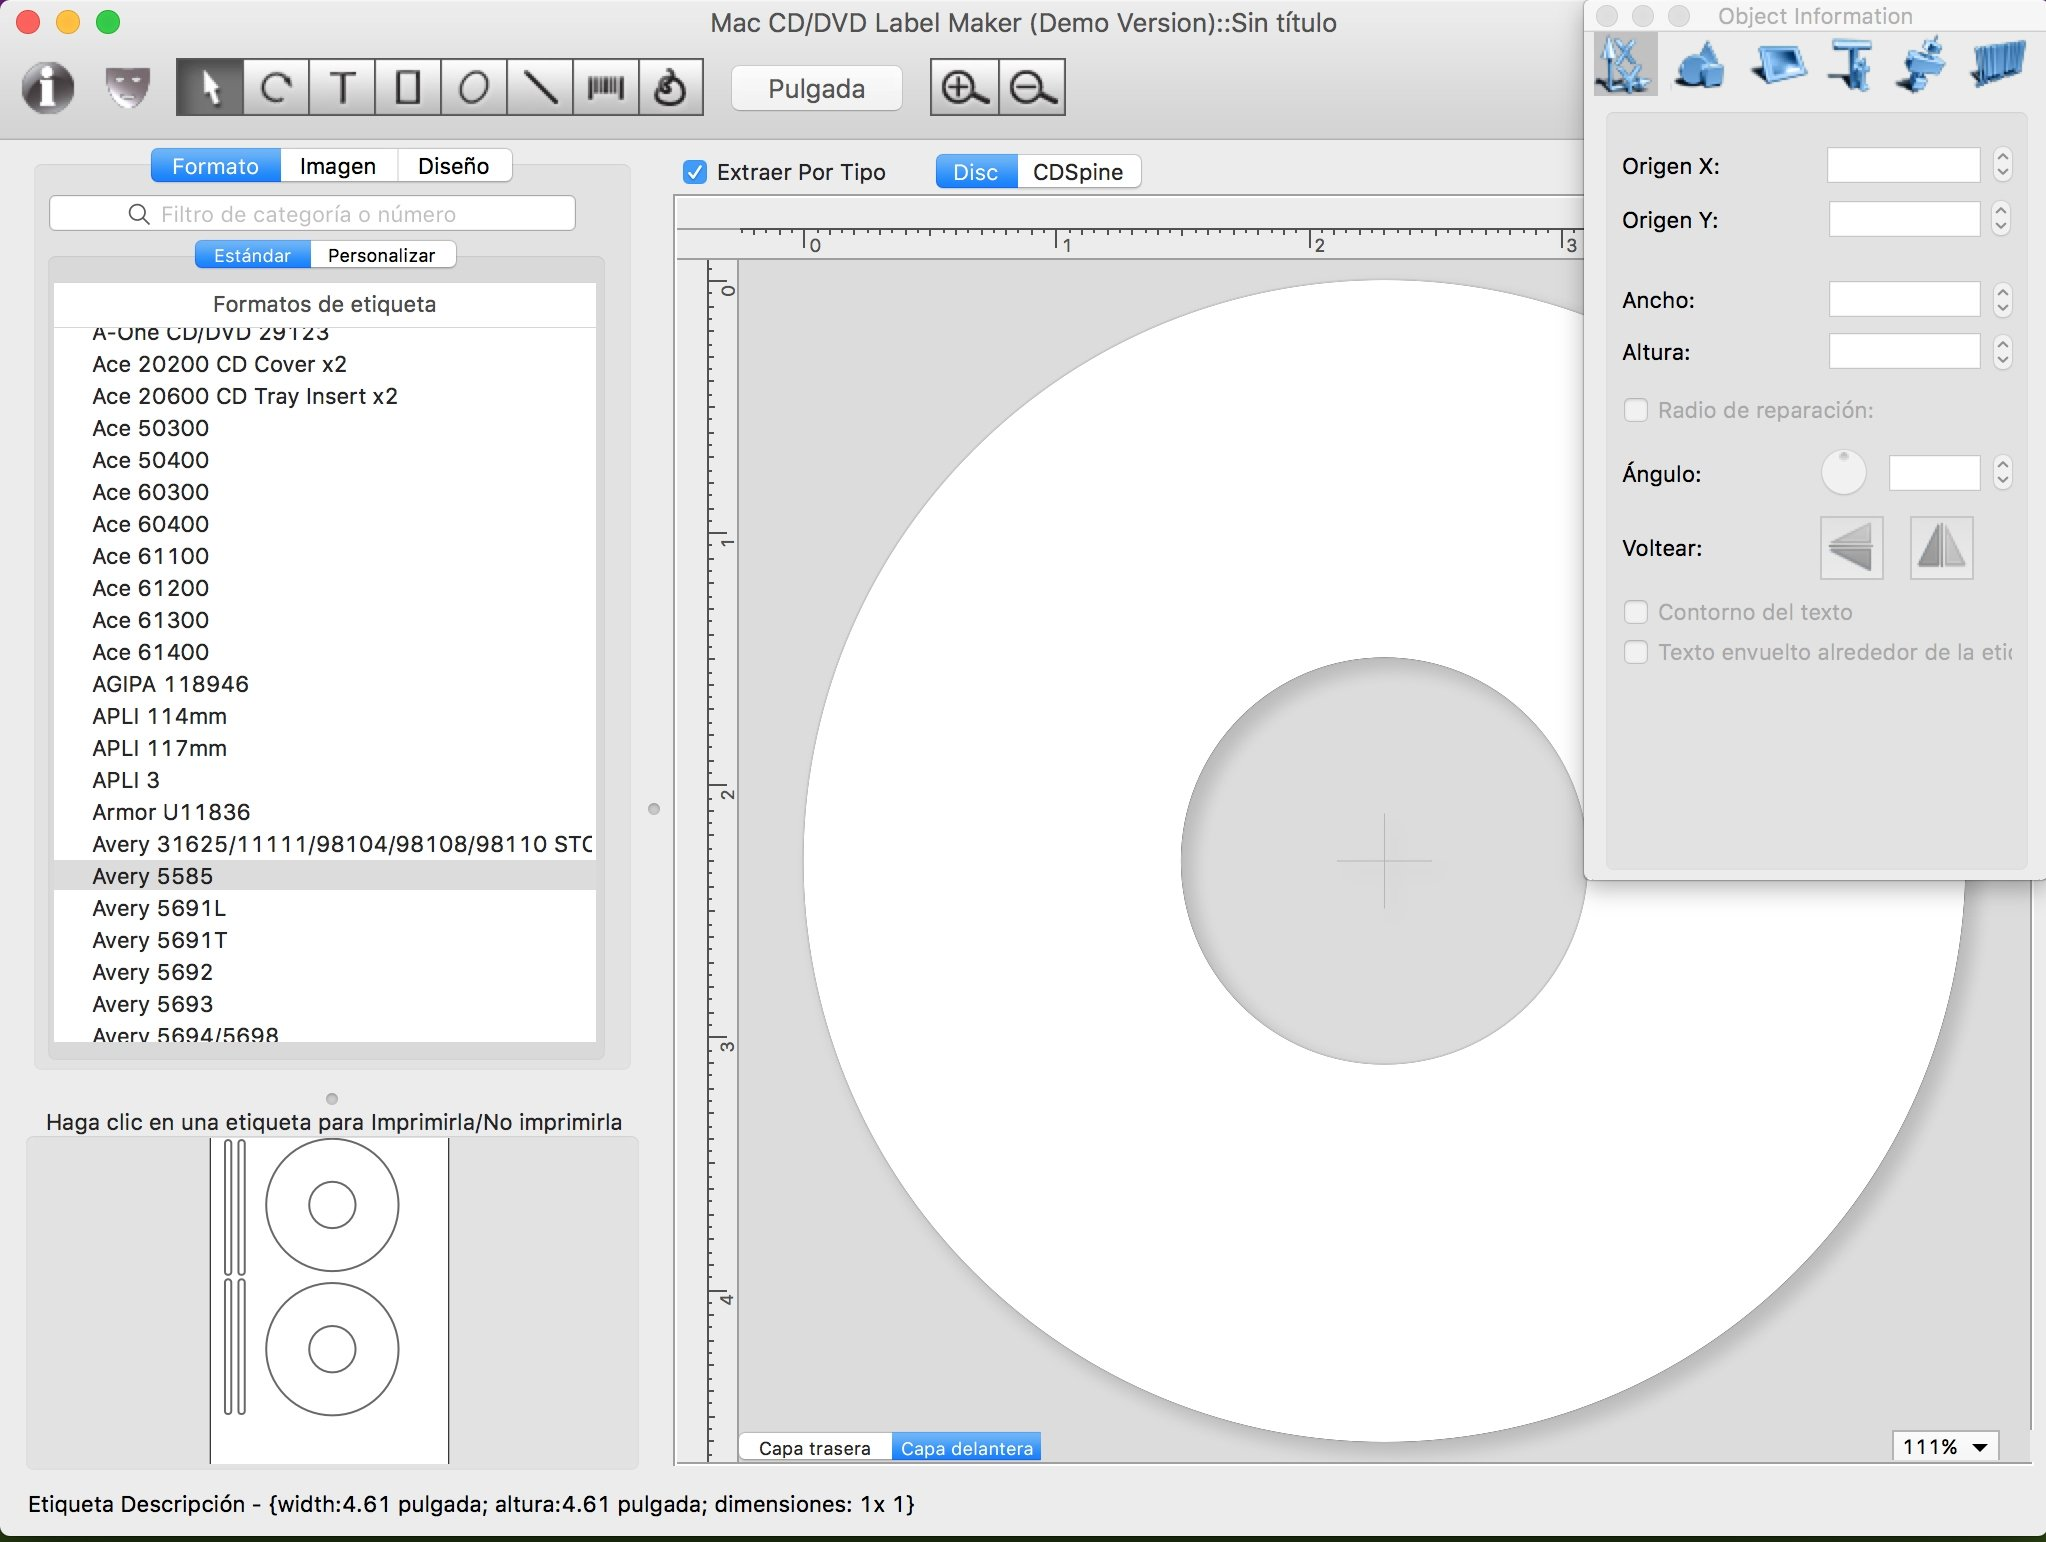 Mac CD/DVD Label Maker 2.4.6 - Descargar Gratis